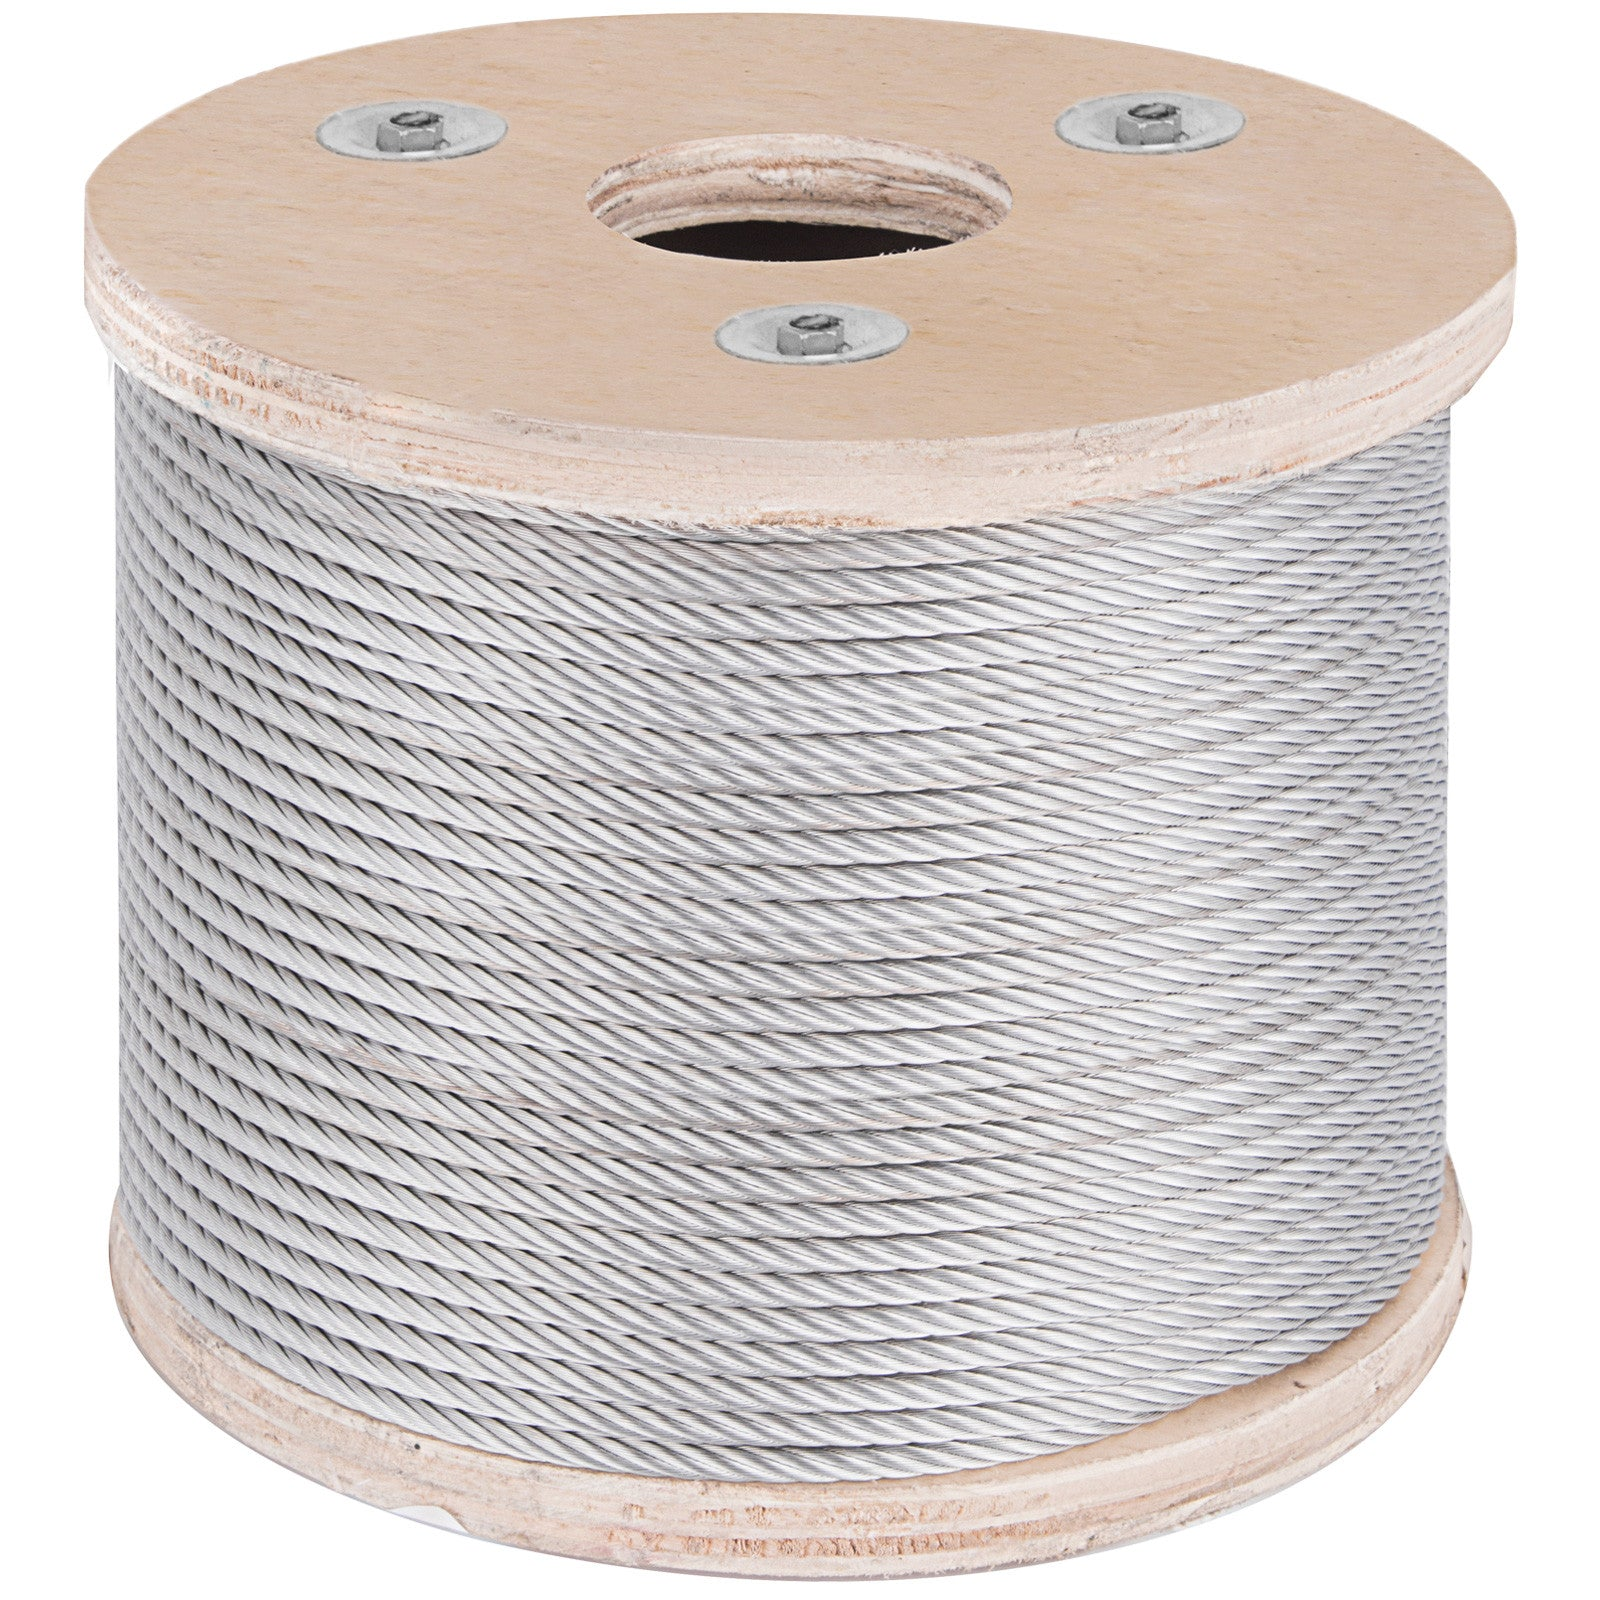 Cable Railing T304 Stainless Steel Cable Wire Rope Strand, 1/4, 7x19, 100 Ft